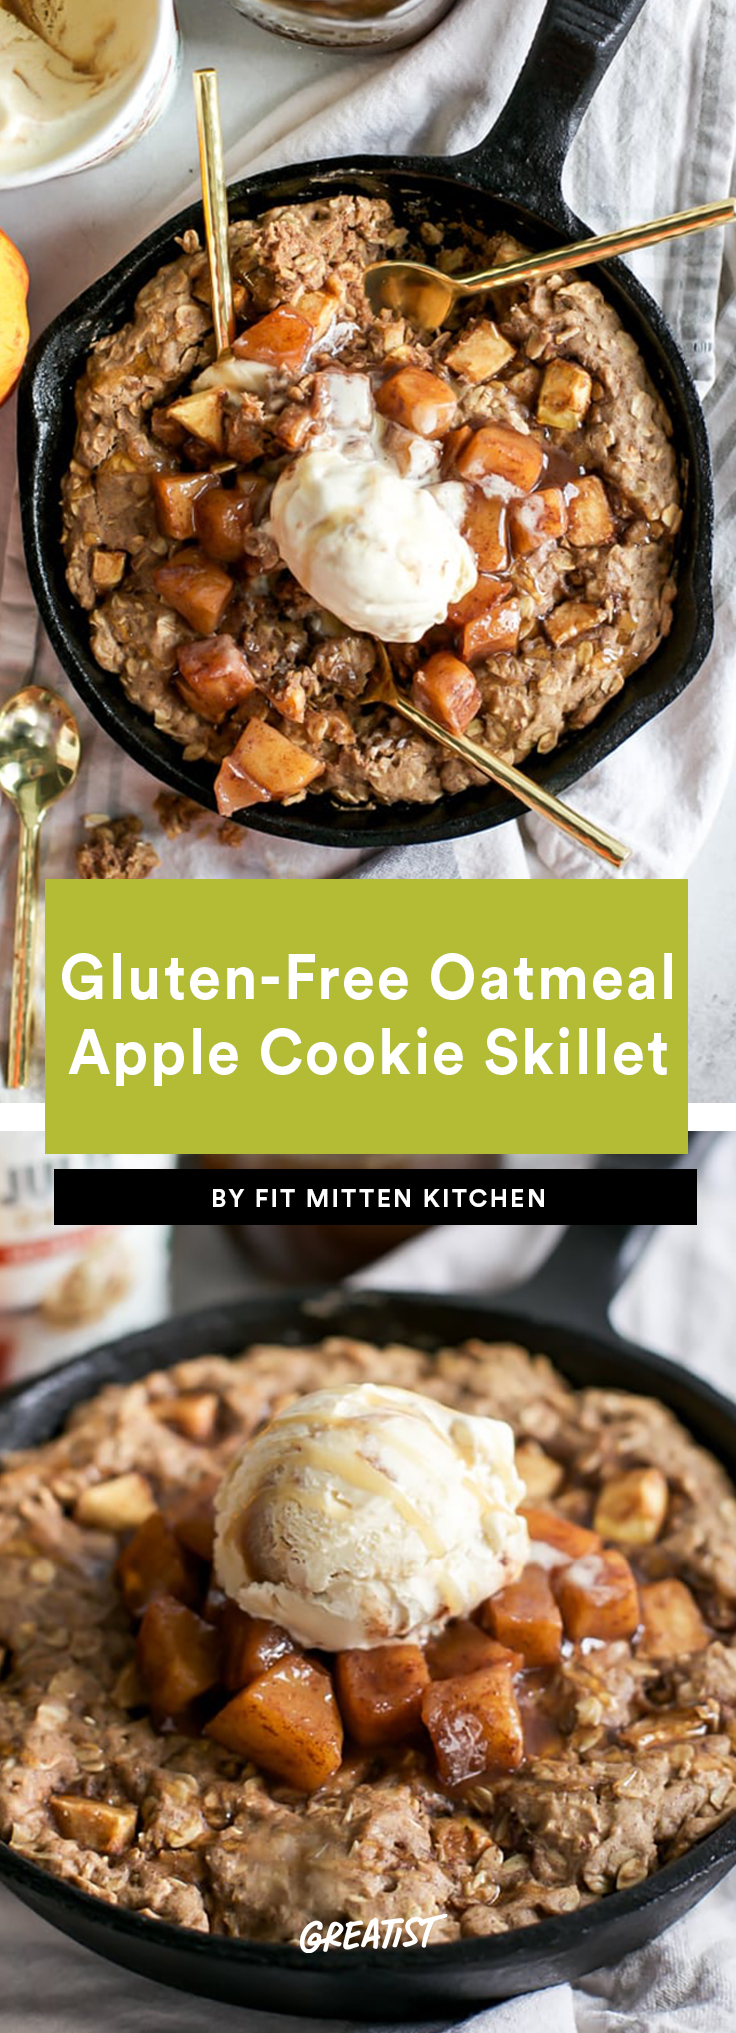 30-Minute Healthy Desserts to Make in a Skillet